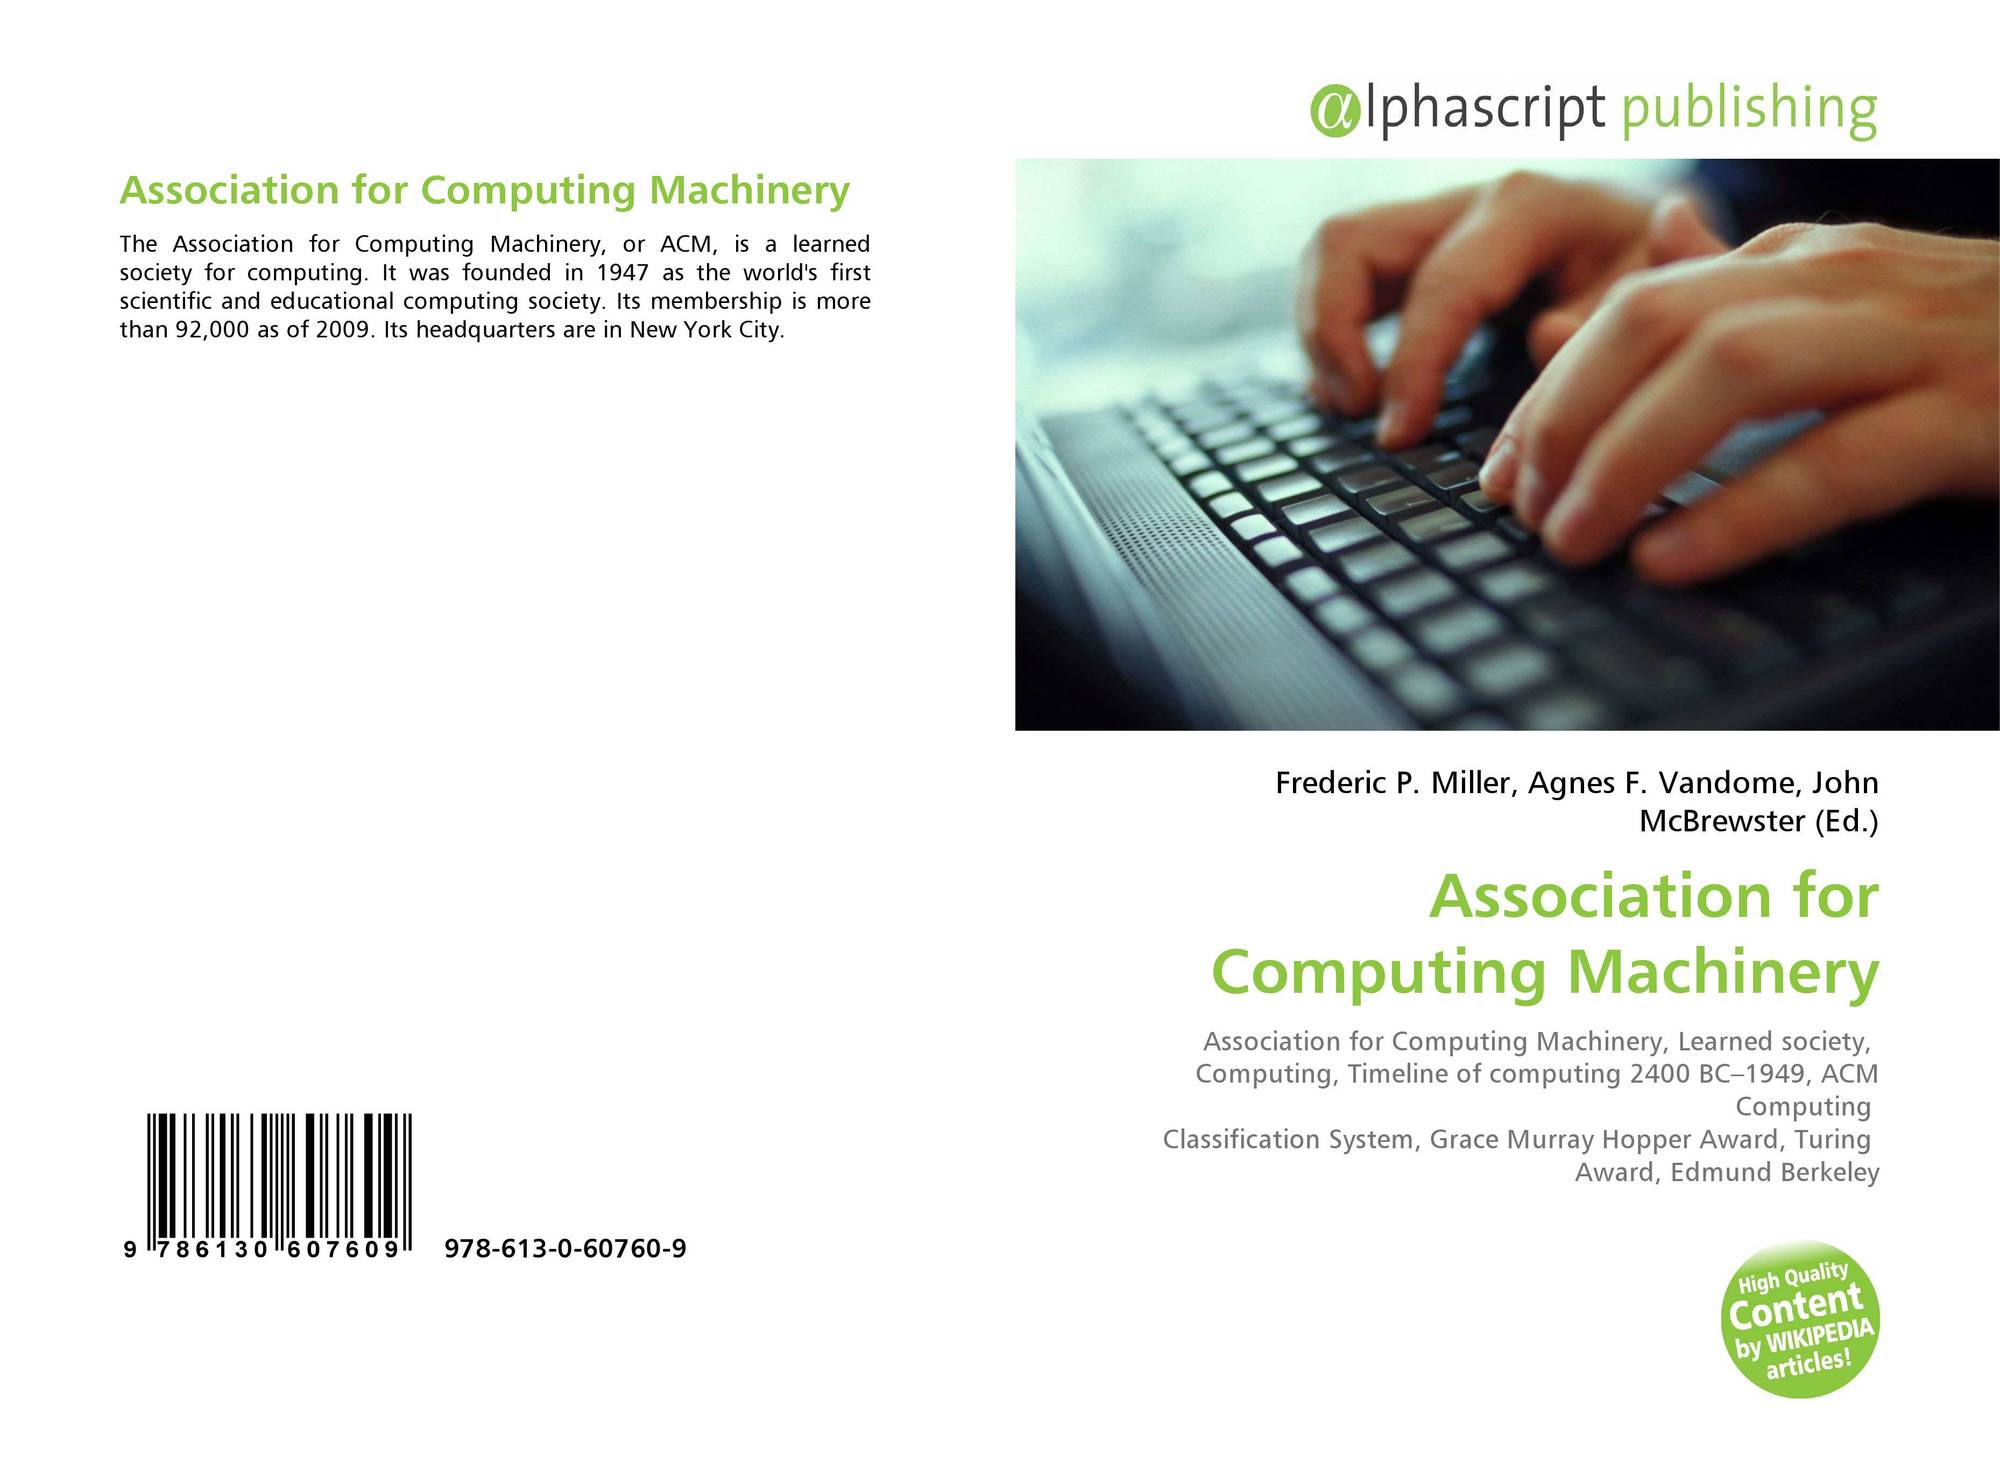 Association for Computing Machinery, 978-613-0-60760-9, 6130607601 ...